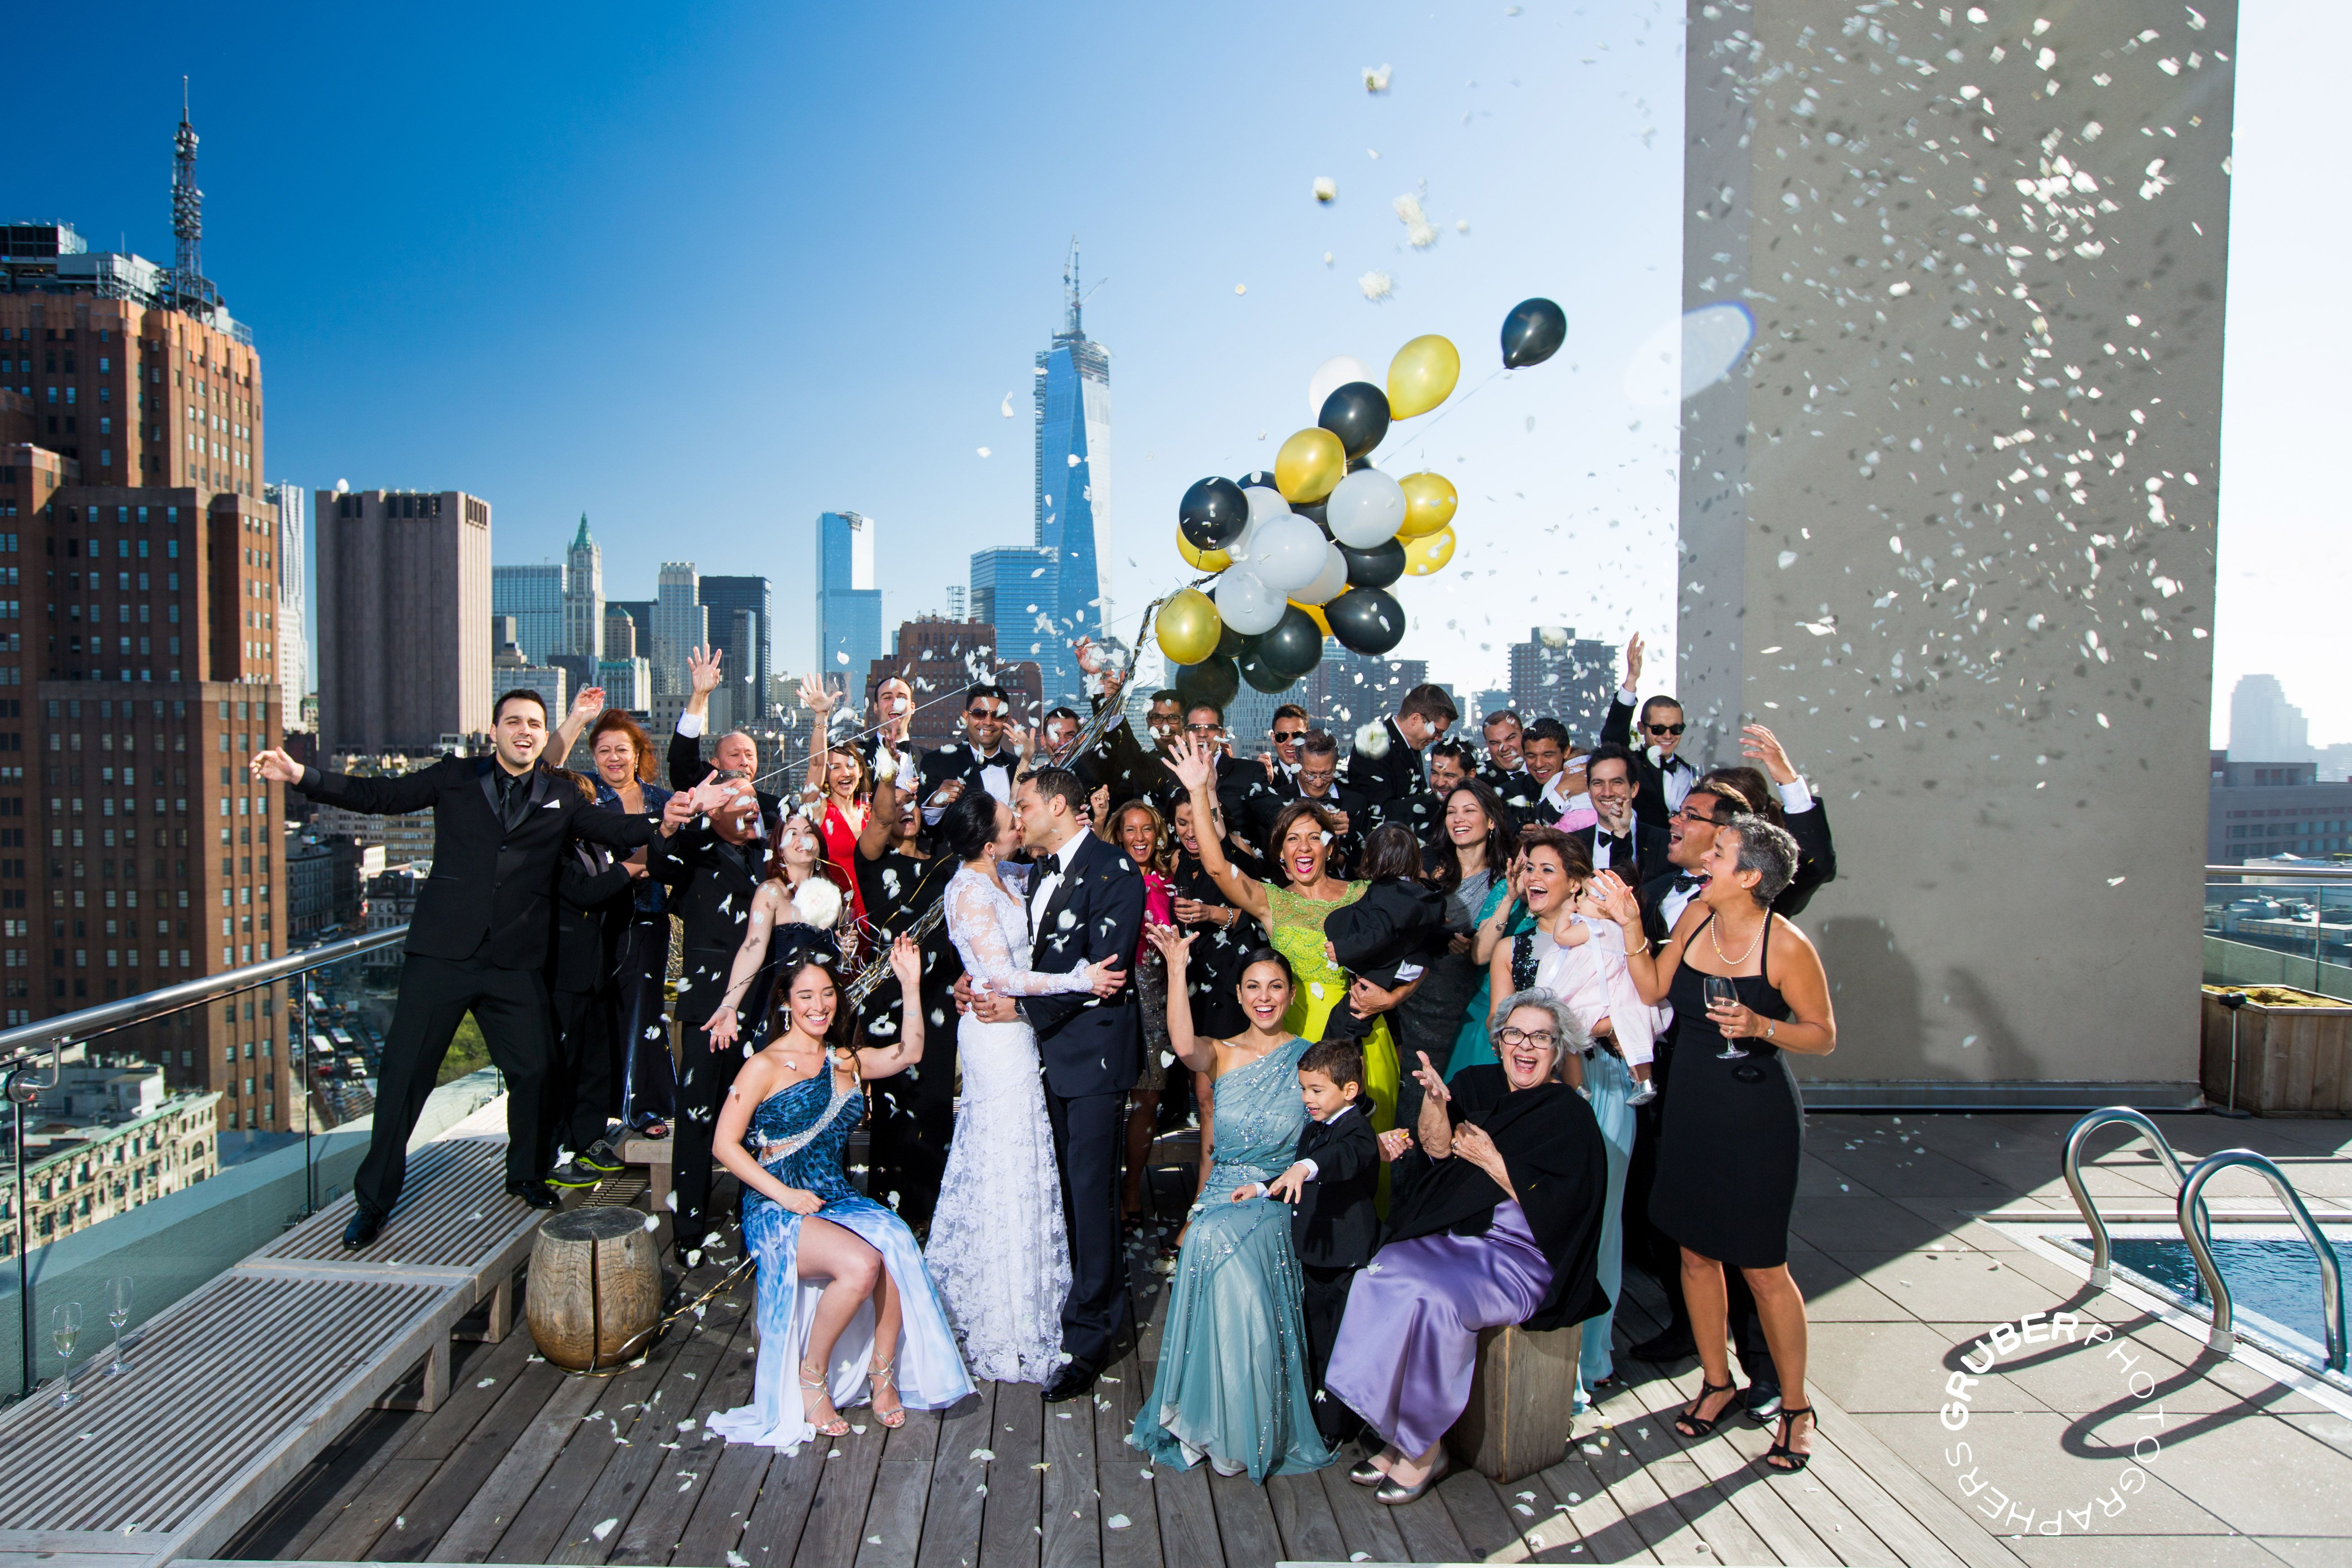 On The Roof Of James Hotel A Stunning Nyc Wedding Moment Captured Have Great Wednesday Everyone